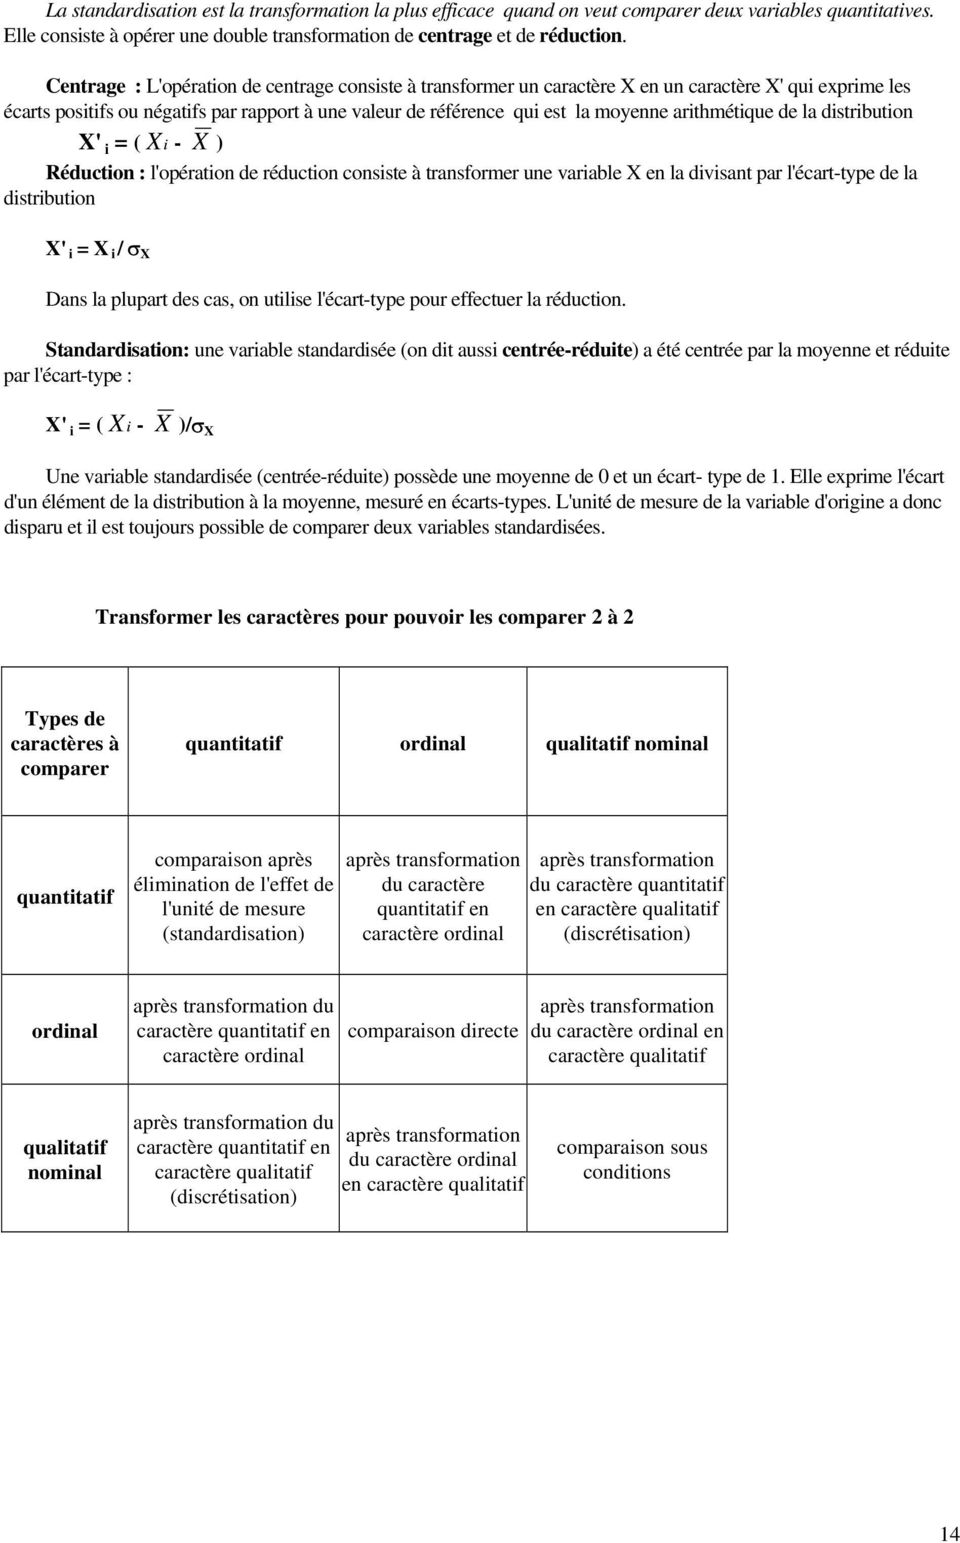 arithmétique de la distribution X' i = ( X i - X ) Réduction : l'opération de réduction consiste à transformer une variable X en la divisant par l'écart-type de la distribution X' i = X i / σ X Dans